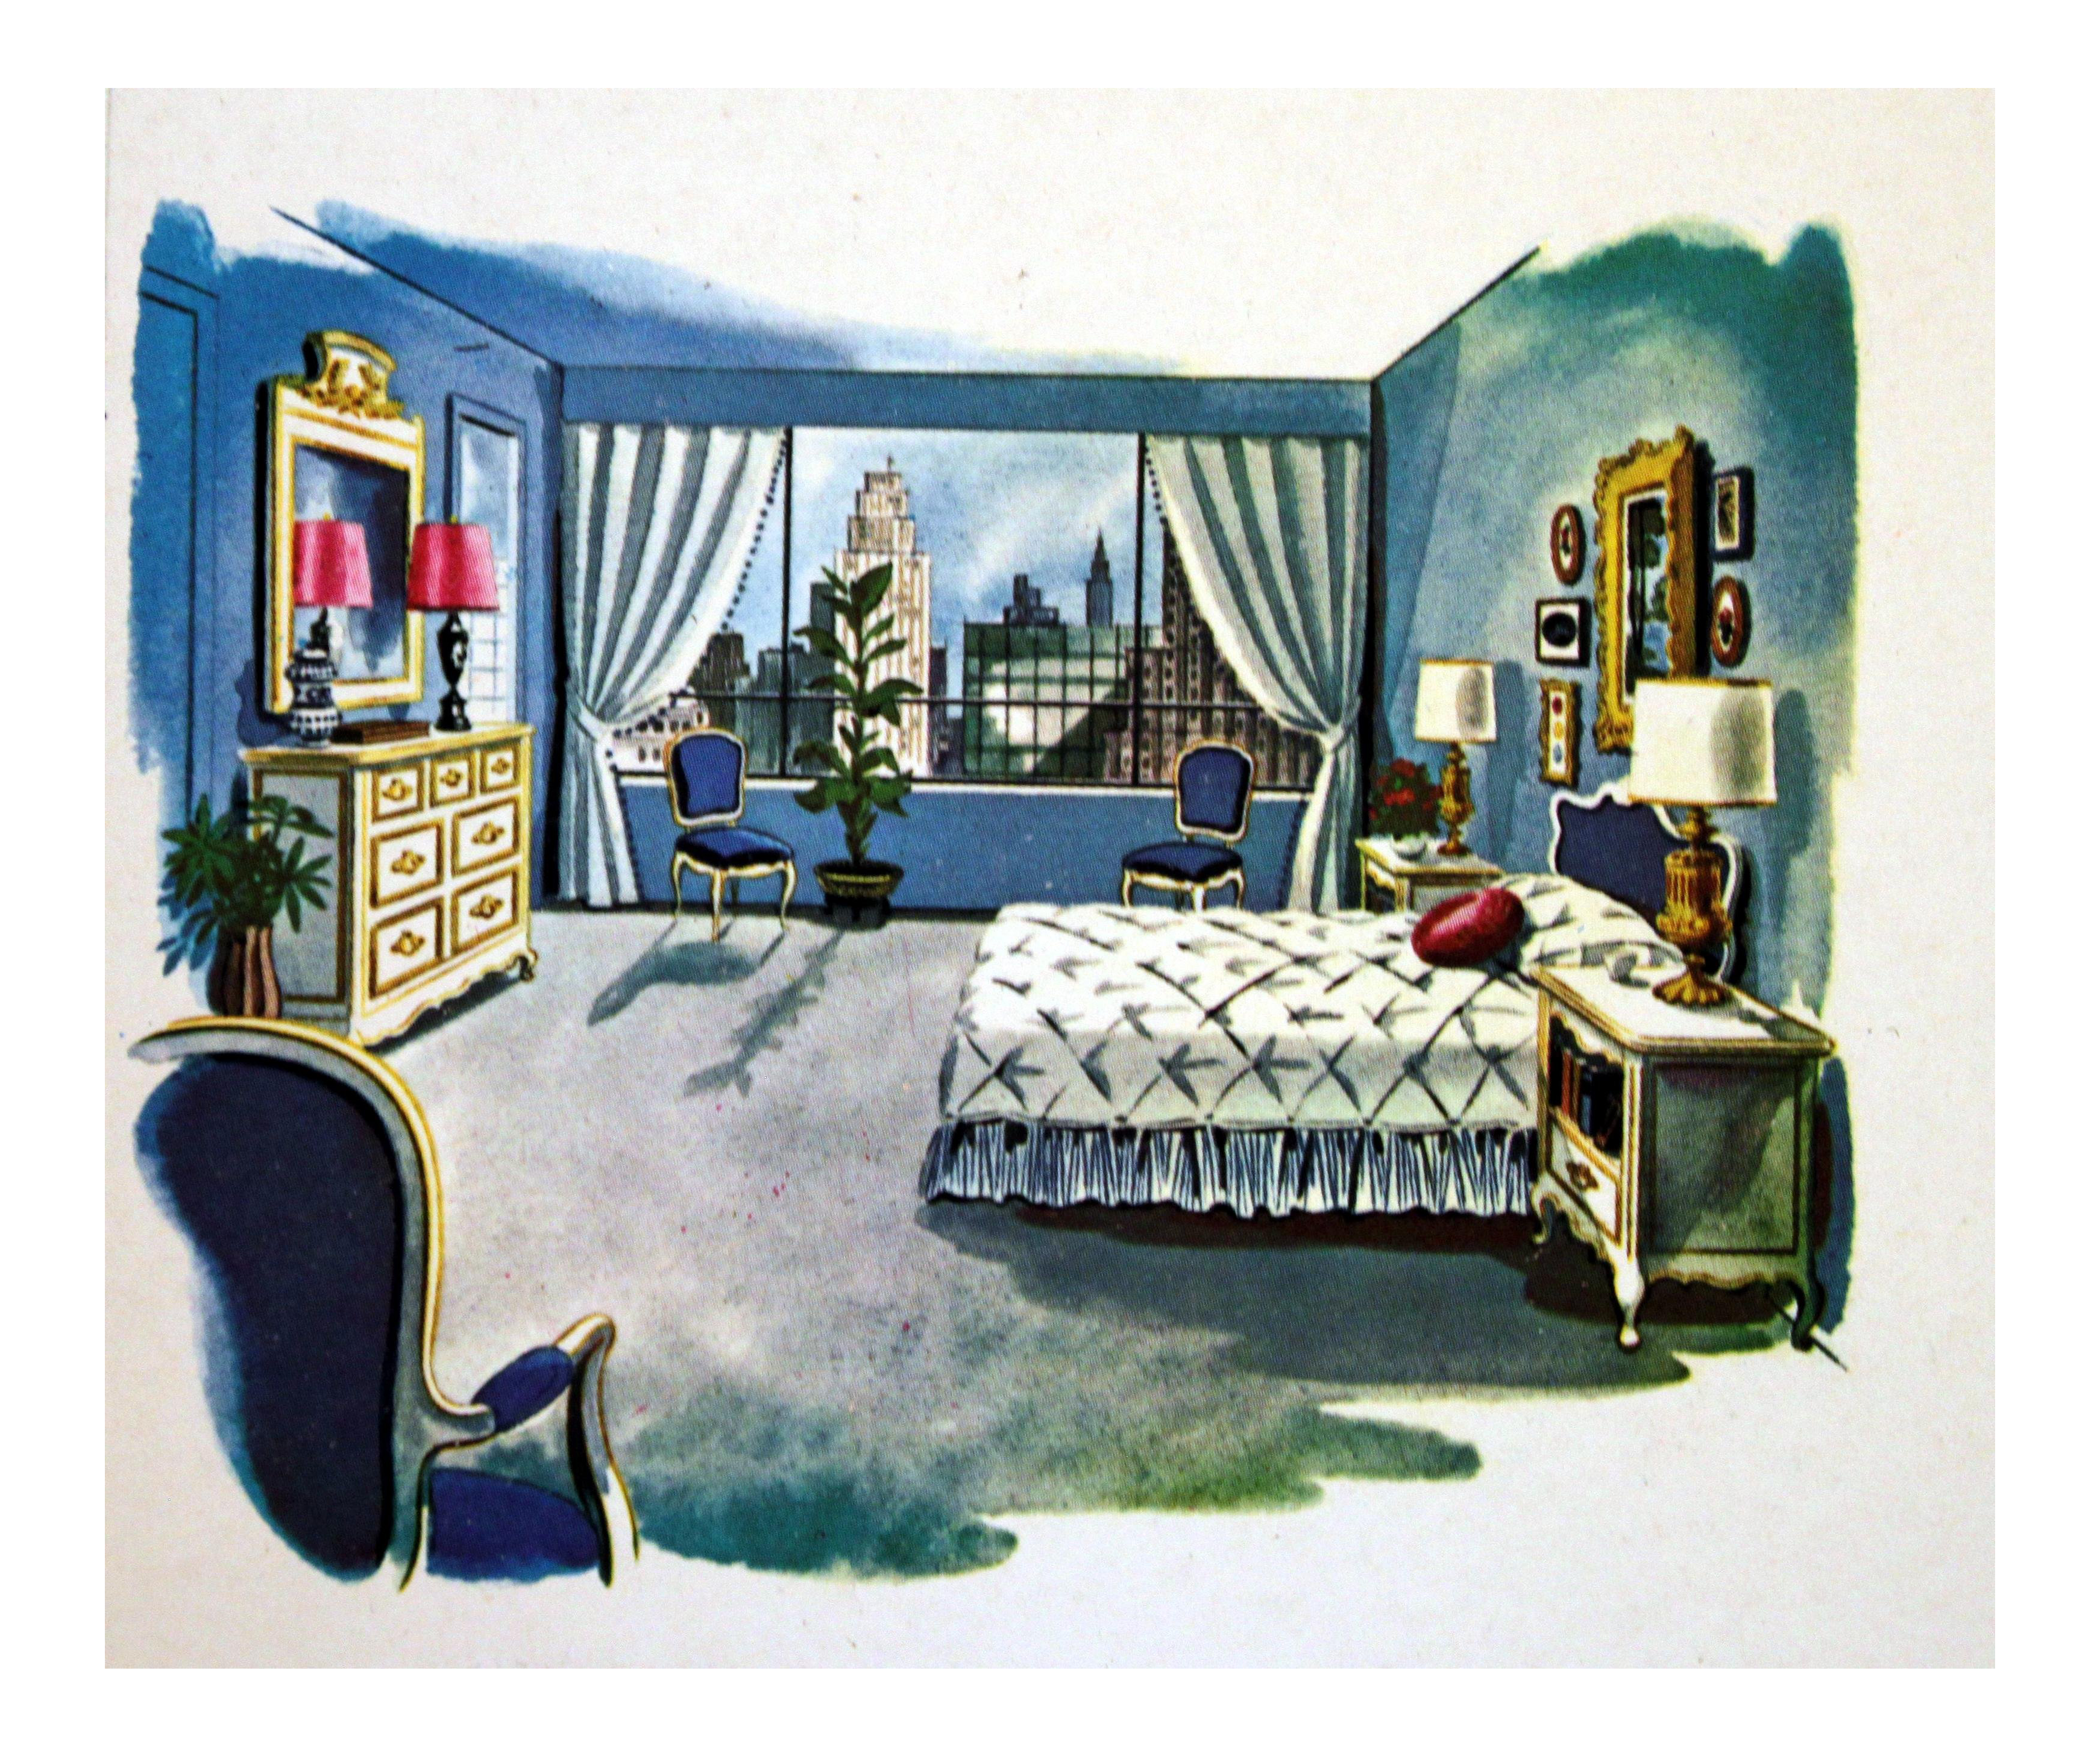 s illustration chairish. Dishes drawing bedroom banner free library